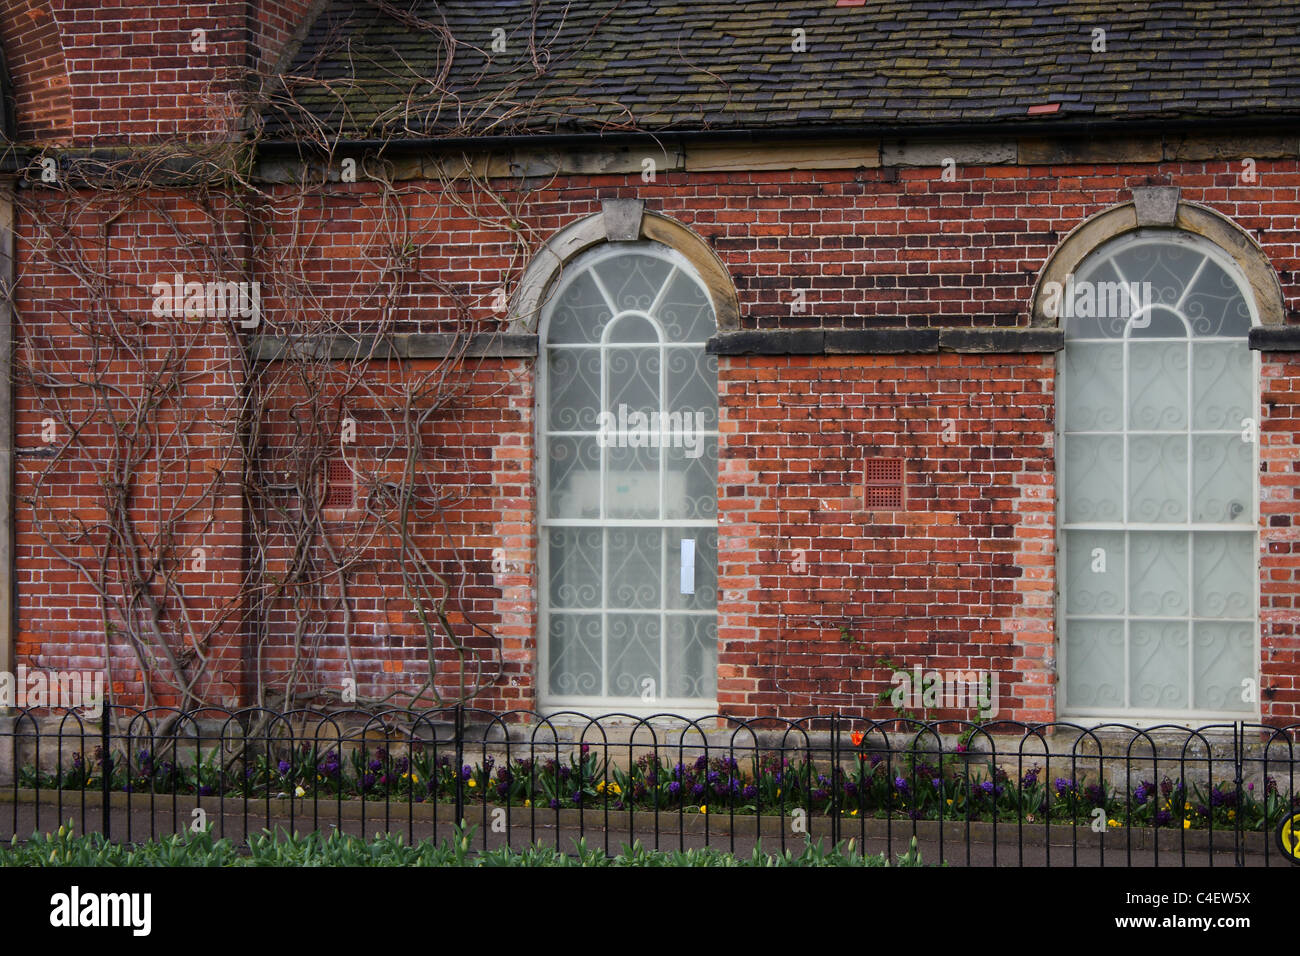 Two arch windows on an overgrown building. - Stock Image